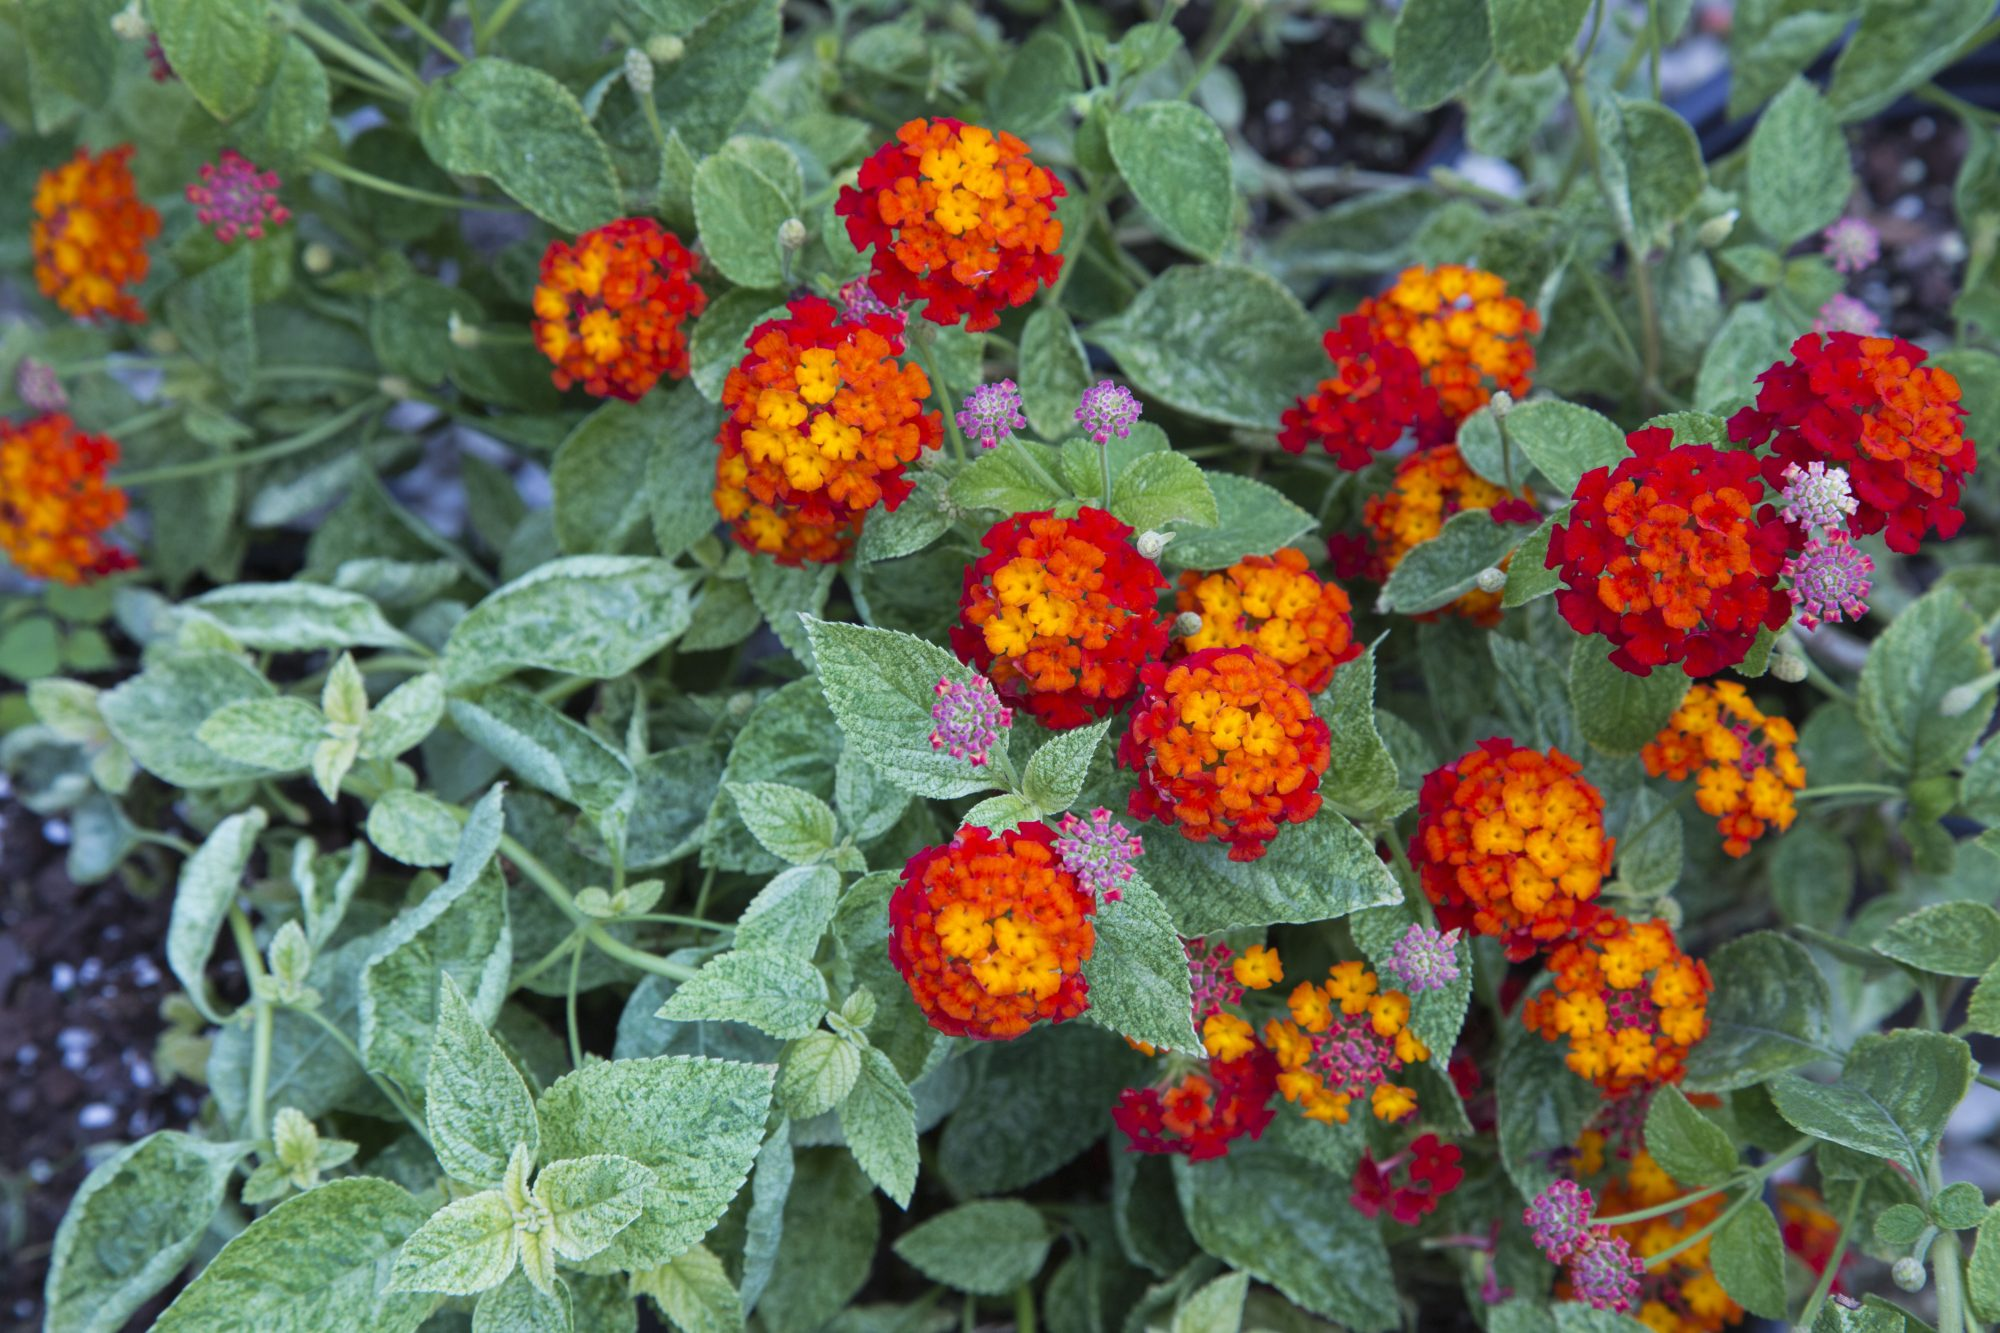 Cosmic Firestorm lantanas deliver year-round color to your yard. This long-blooming, drought-resistant plant attracts hummingbirds and butterflies with its fiery-colored flowers.USDA Zones: 8, 9, 10Exposure: Full SunLearn more about Cosmic Firestorm™ lantanas.